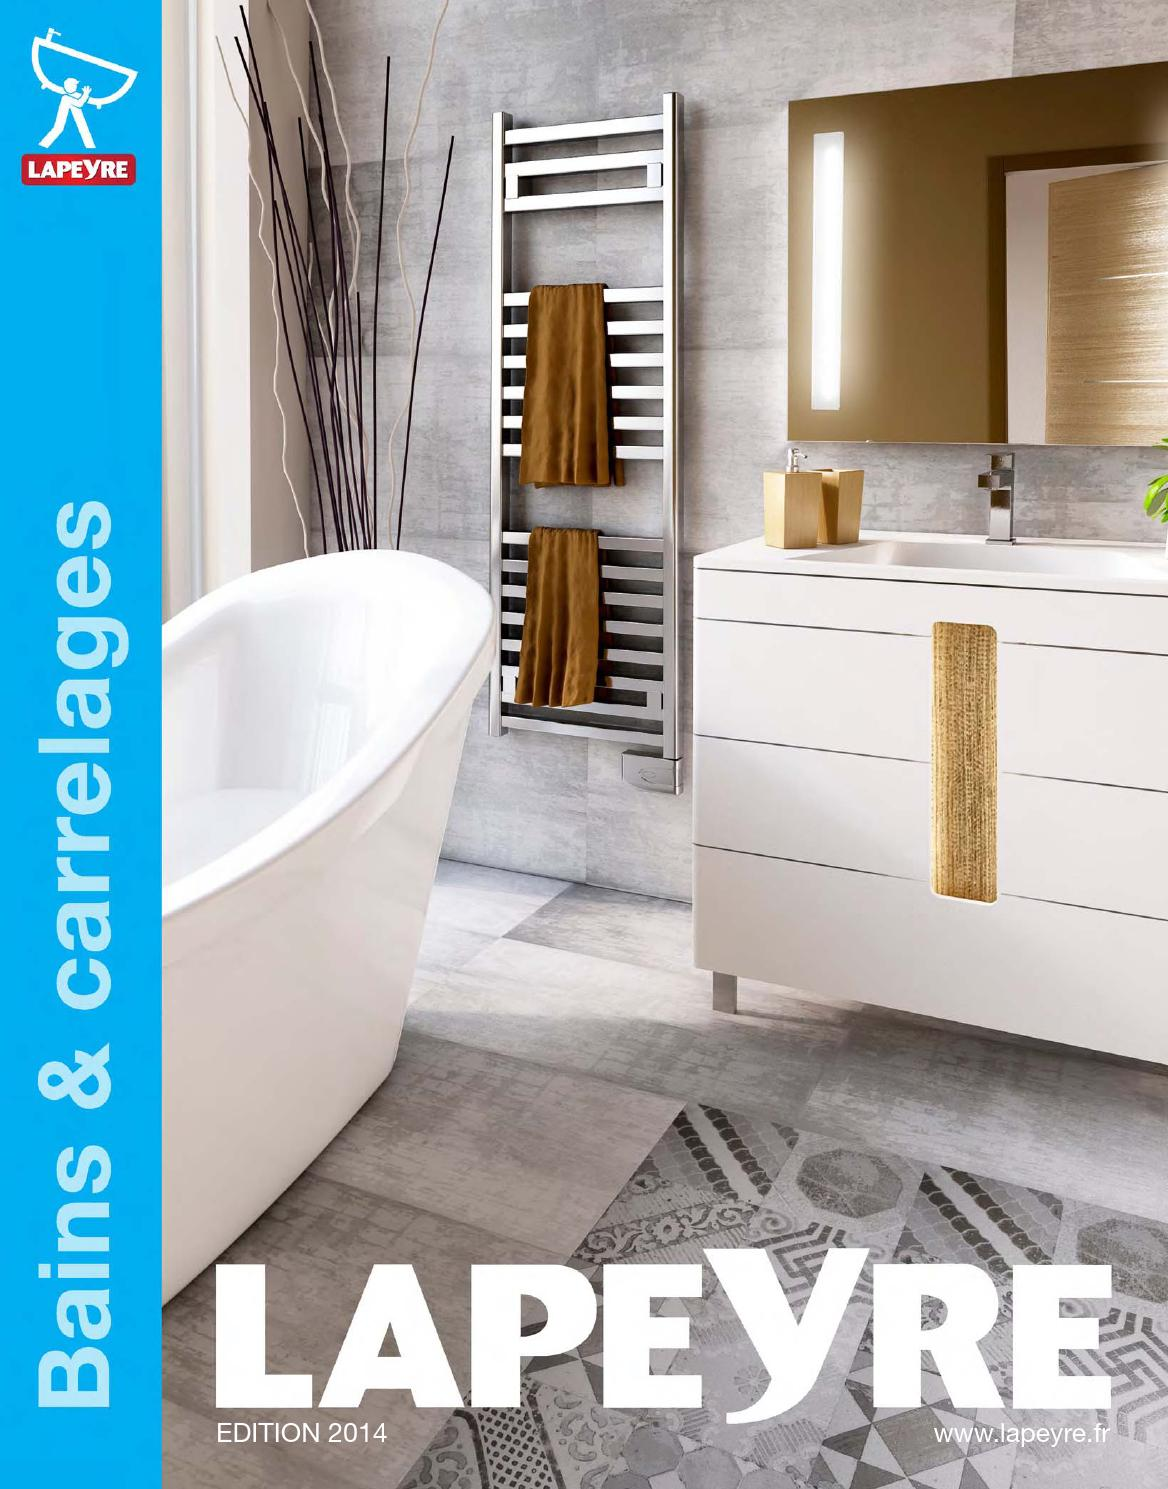 catalogue lapeyre - bains & carrelages 2014joe monroe - issuu